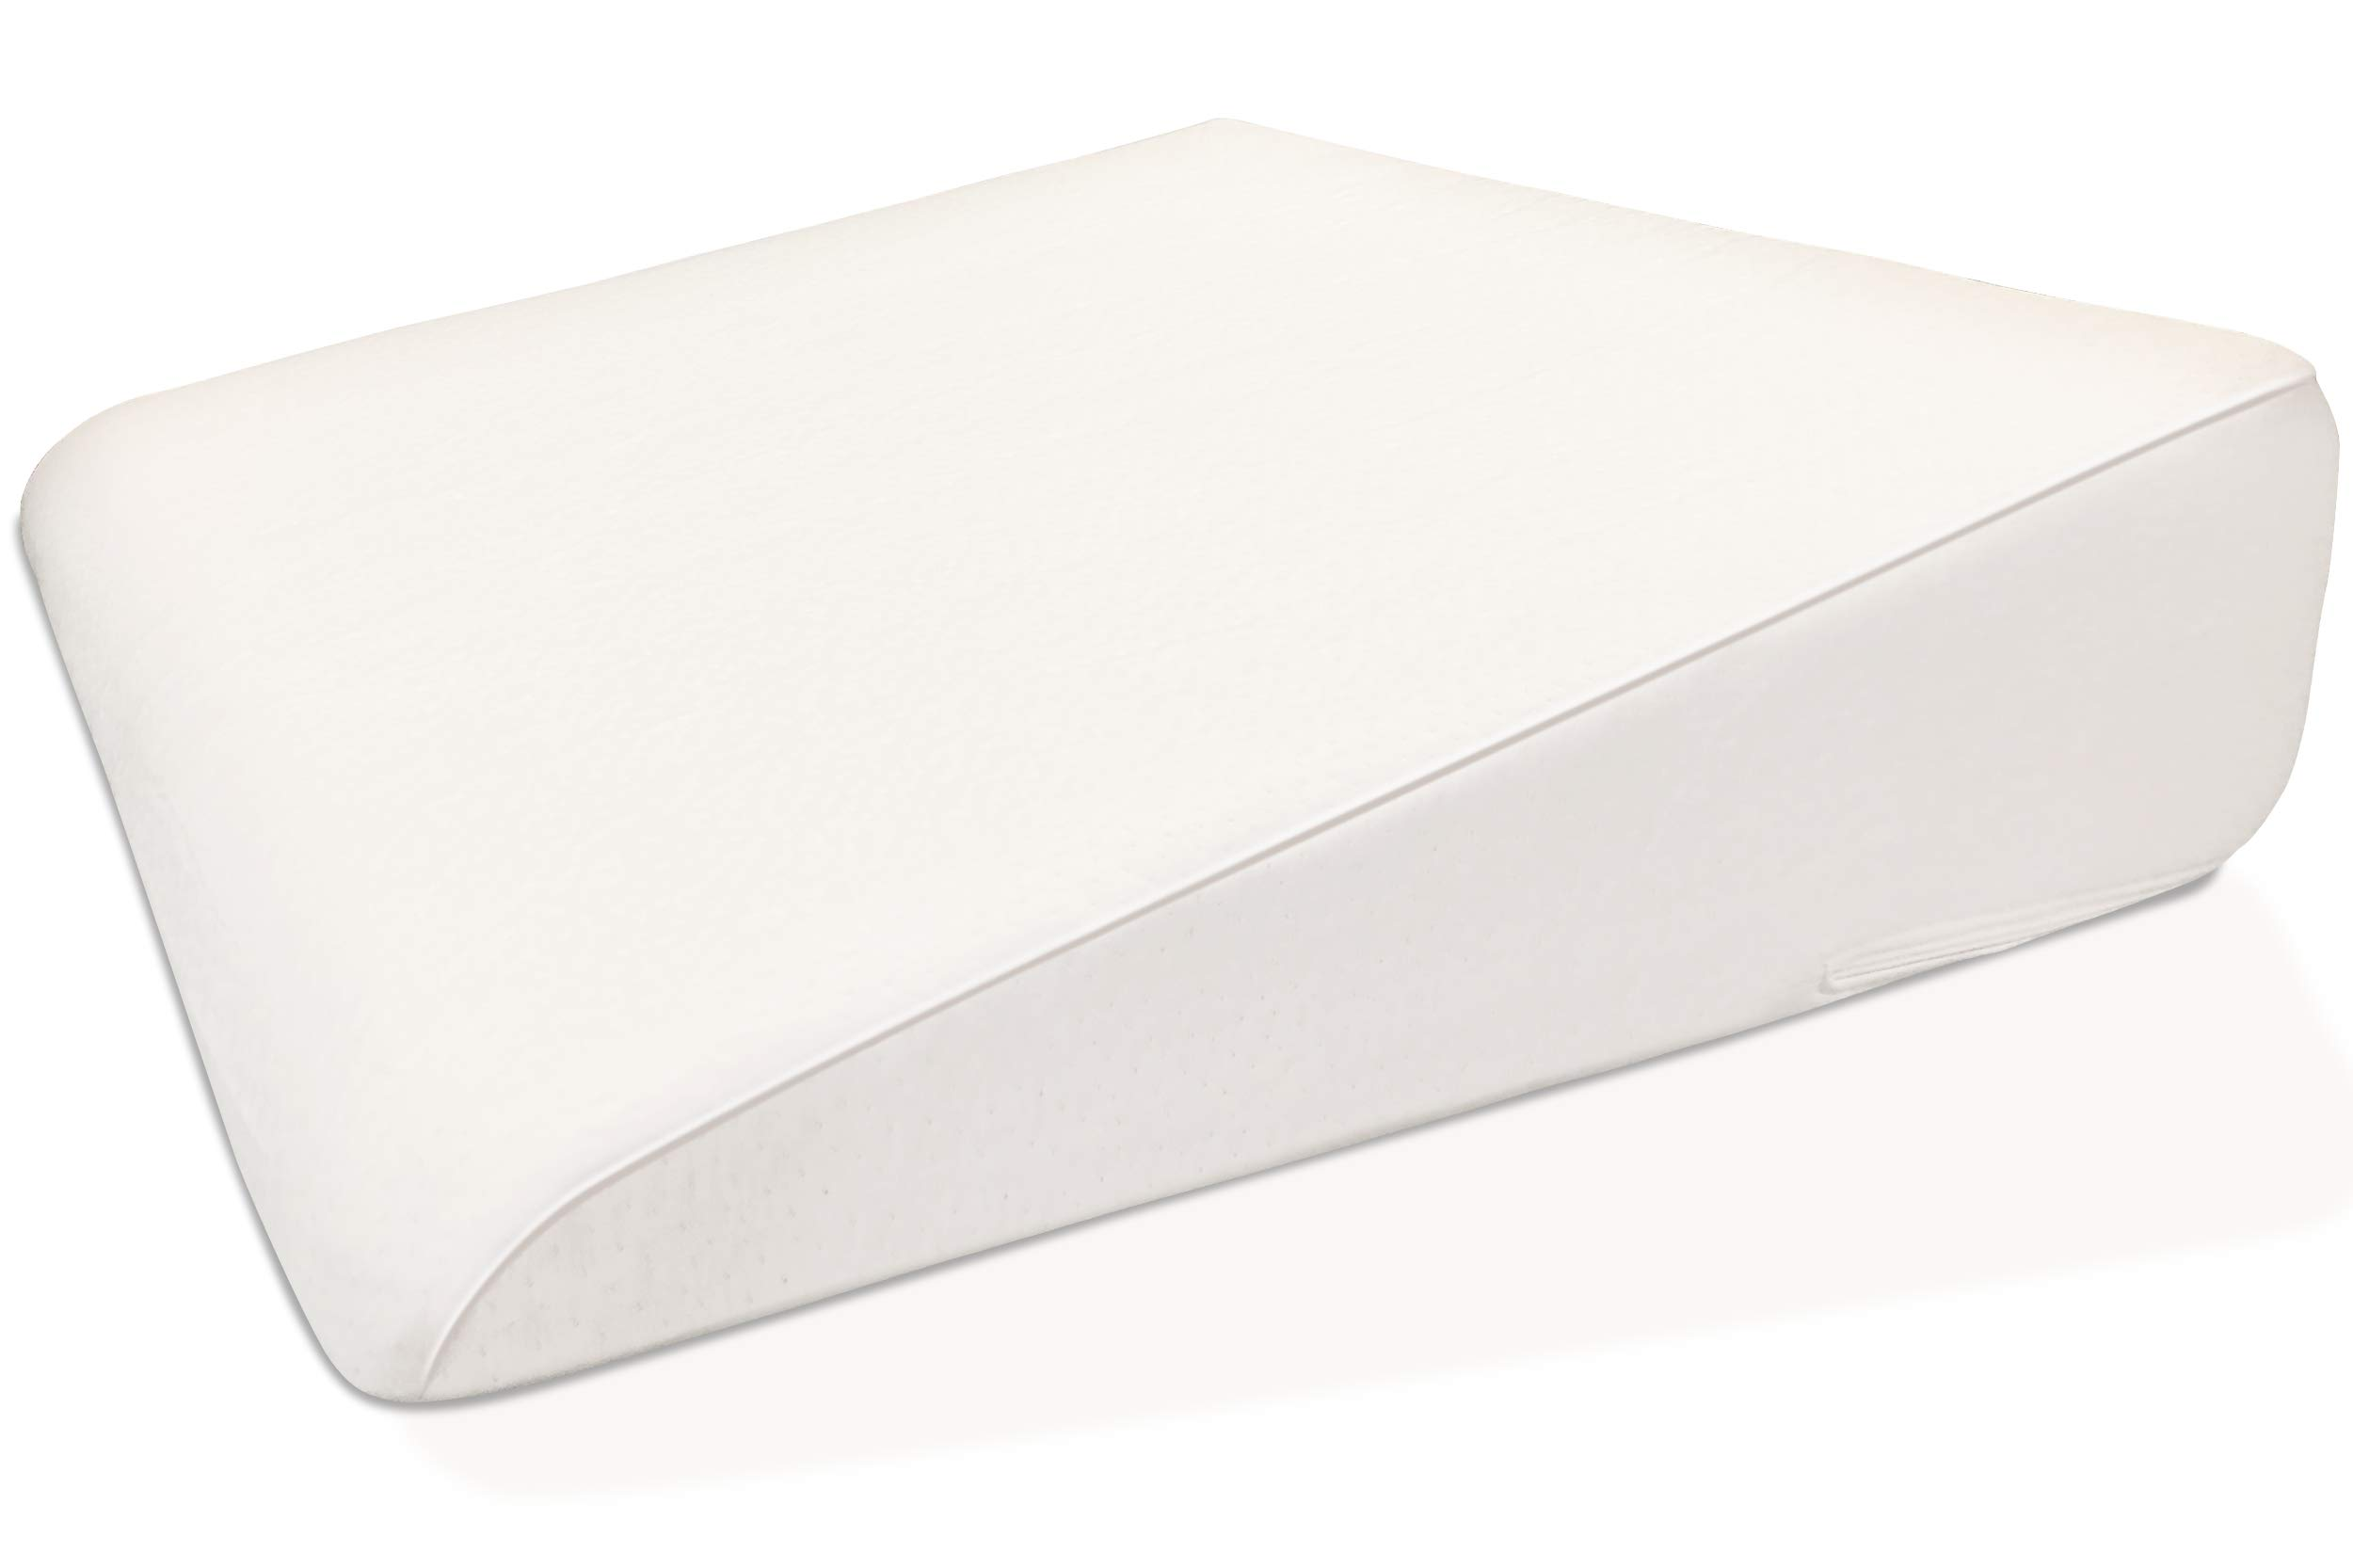 7.5'' Wedge Pillow For Acid Reflux - Dr. Recommended Height, Luxurious 2'' Memory Foam Pillow Wedge For Sleeping, GERD, Post Surgery, Heartburn, and Snoring - Washable Bamboo Cover (25''W x 26''L x 7.5''H) by Silverback Wedge Pillow